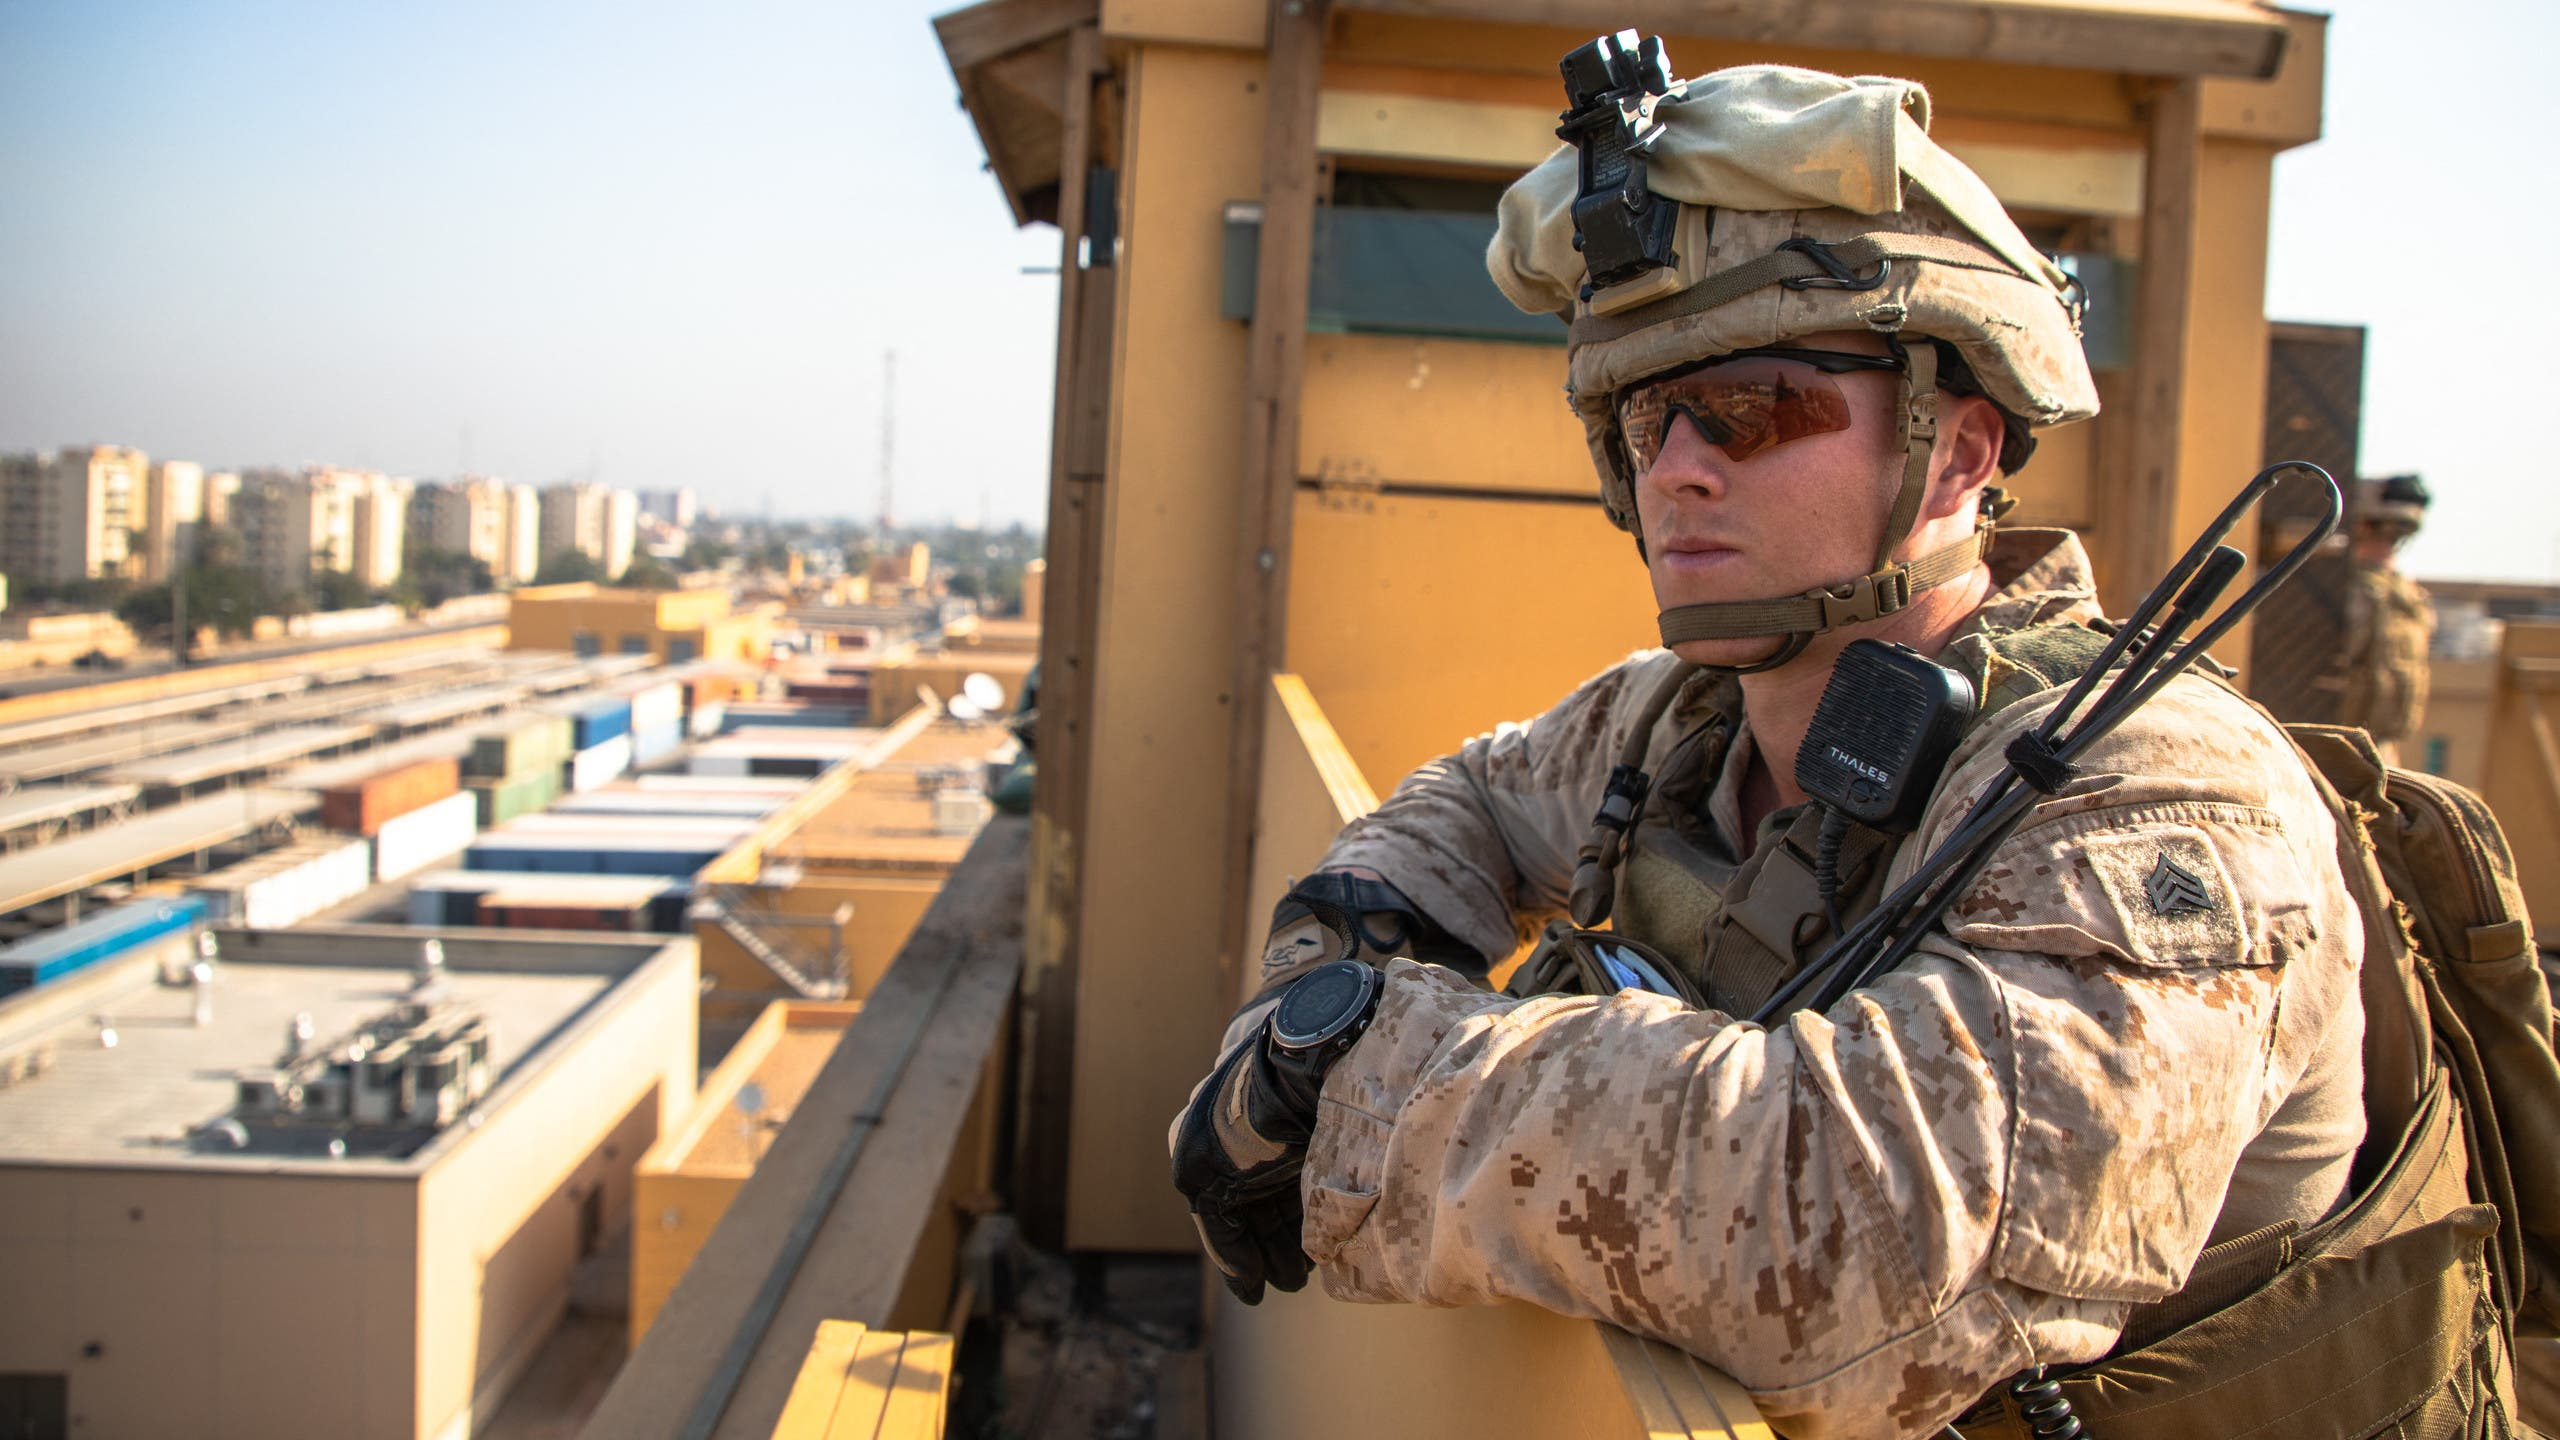 This handout image released courtesy of the US Department of Defense (DOD) shows US Marines with 2nd Battalion, 7th Marines, assigned to the Special Purpose Marine Air-Ground Task Force-Crisis Response-Central Command (SPMAGTF-CR-CC) 19.2, reinforcing the Baghdad Embassy Compound in Iraq on January 3, 2020. US personnel at the American embassy in Baghdad, which has come under attack by pro-Iran protesters, are safe and there are no plans to evacuate, the State Department said on December 31, 2019.